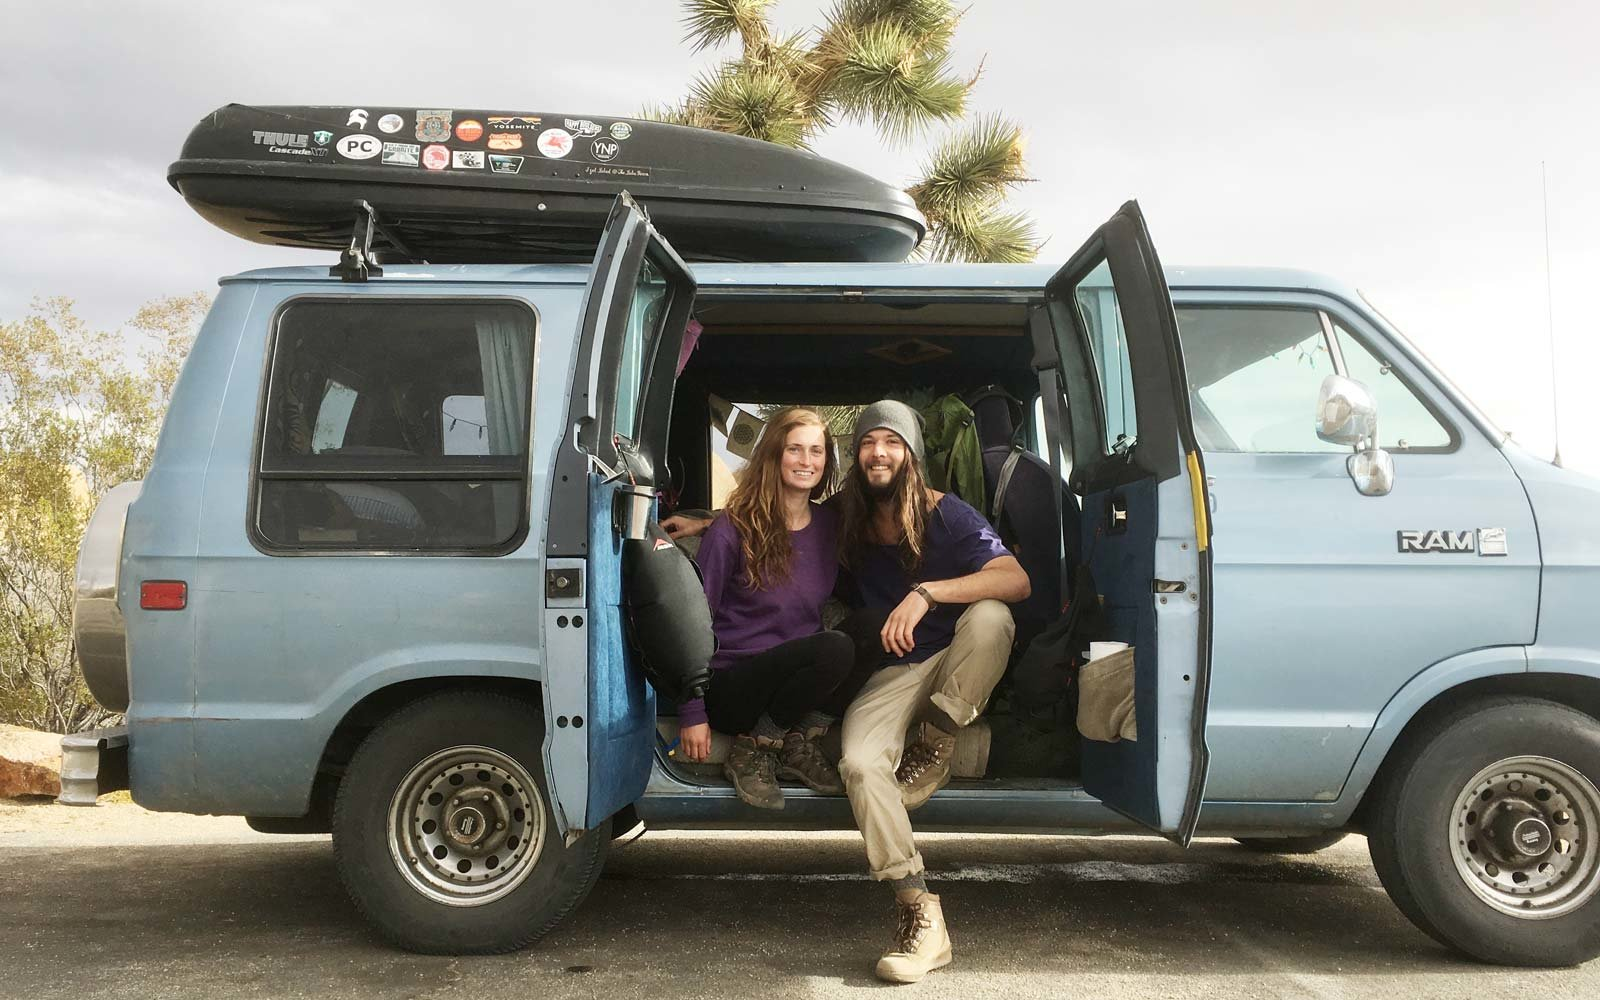 Newlyweds Reveal How They Travel the Country in Style in Their $1,500 Van | Travel + Leisure